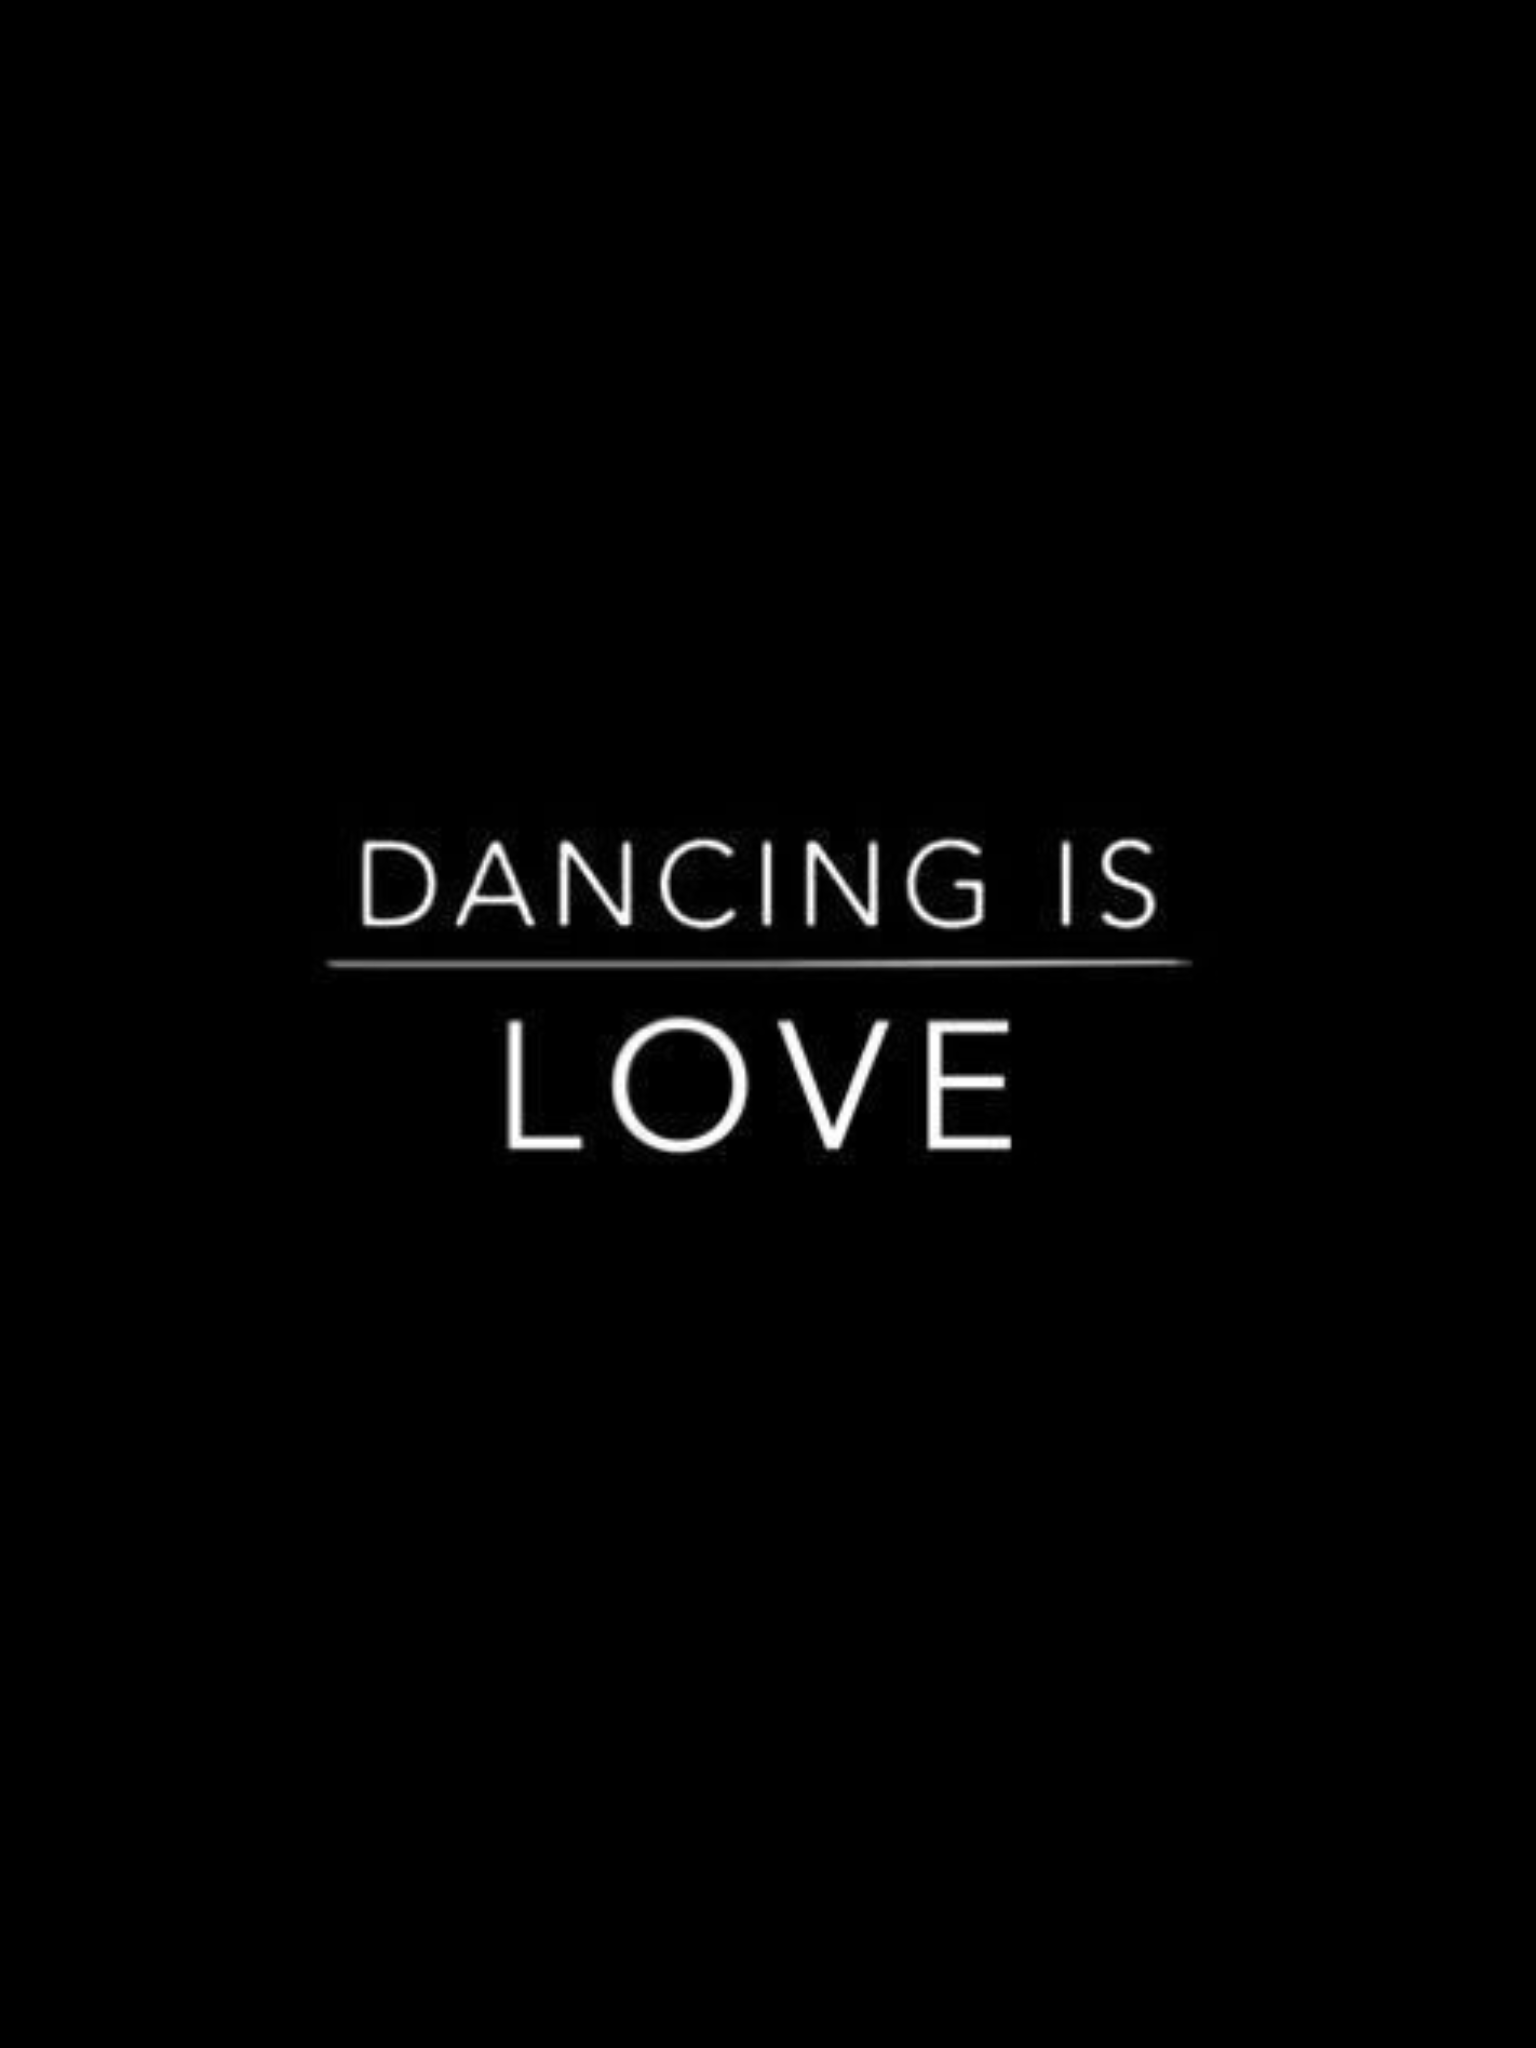 Pin By Baila Conmigo Llc On Dance Dance Quotes Dancer Quotes Dance Life